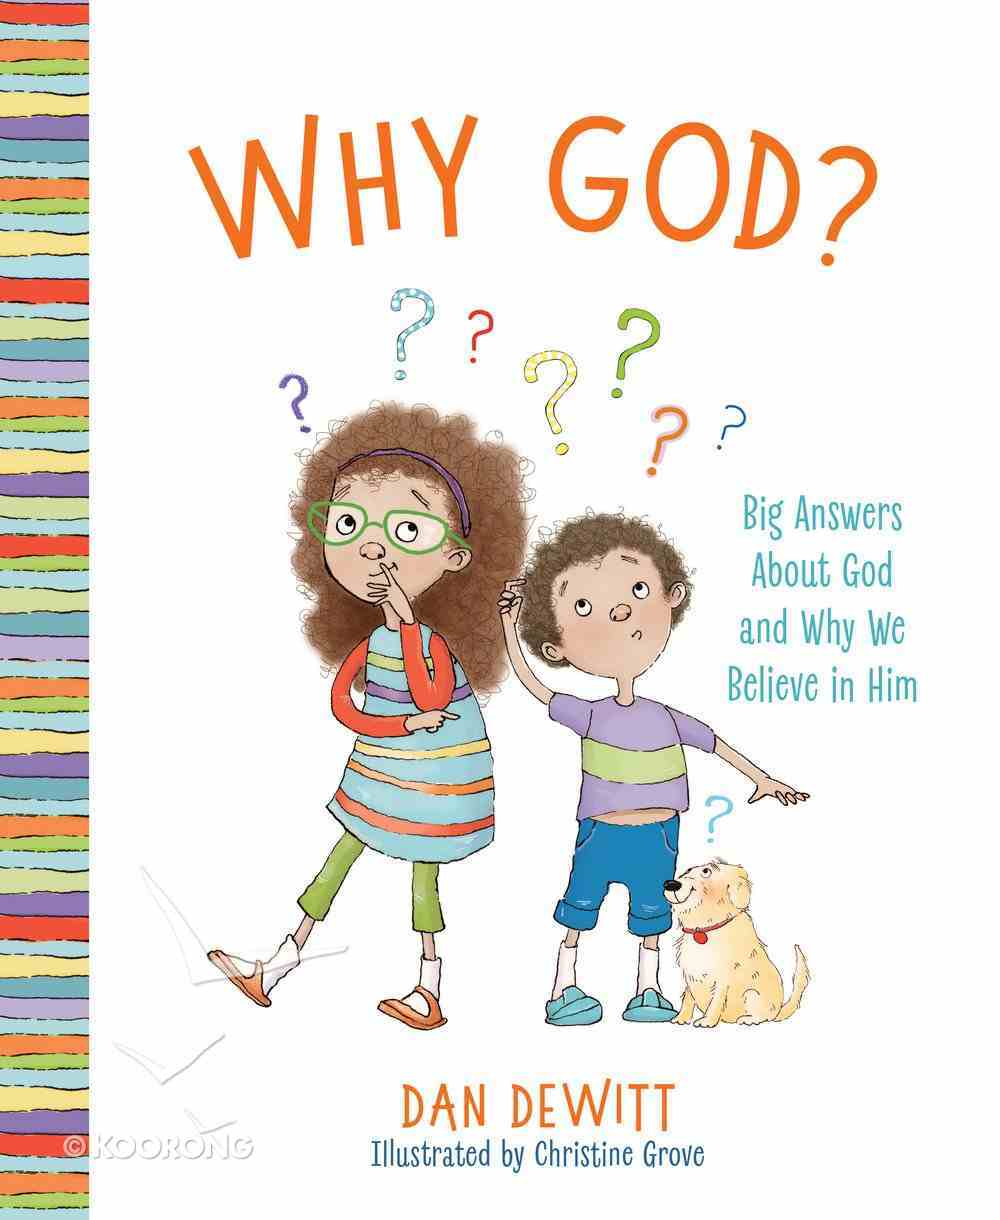 Why God?: Exploring Who God is and Why We Should Believe in Him Hardback